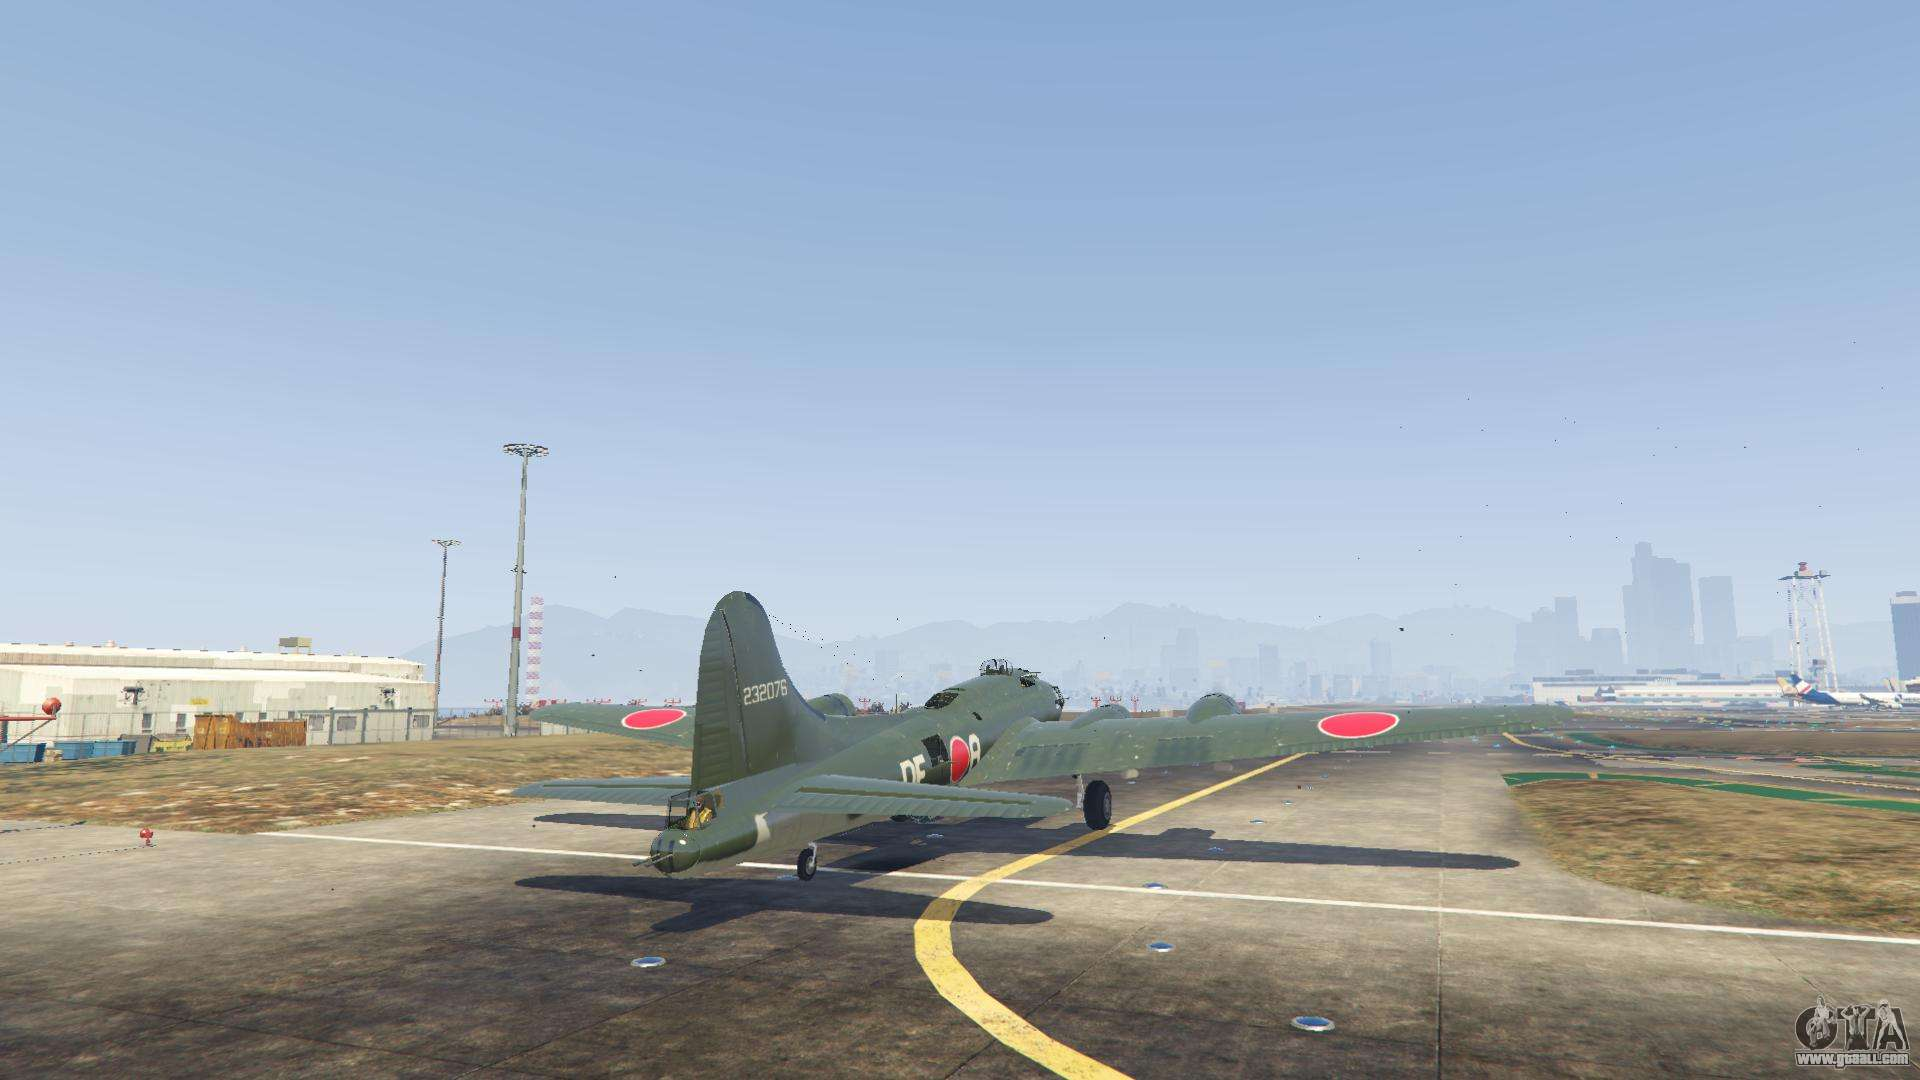 gta 5 how to use mouse for aircraft